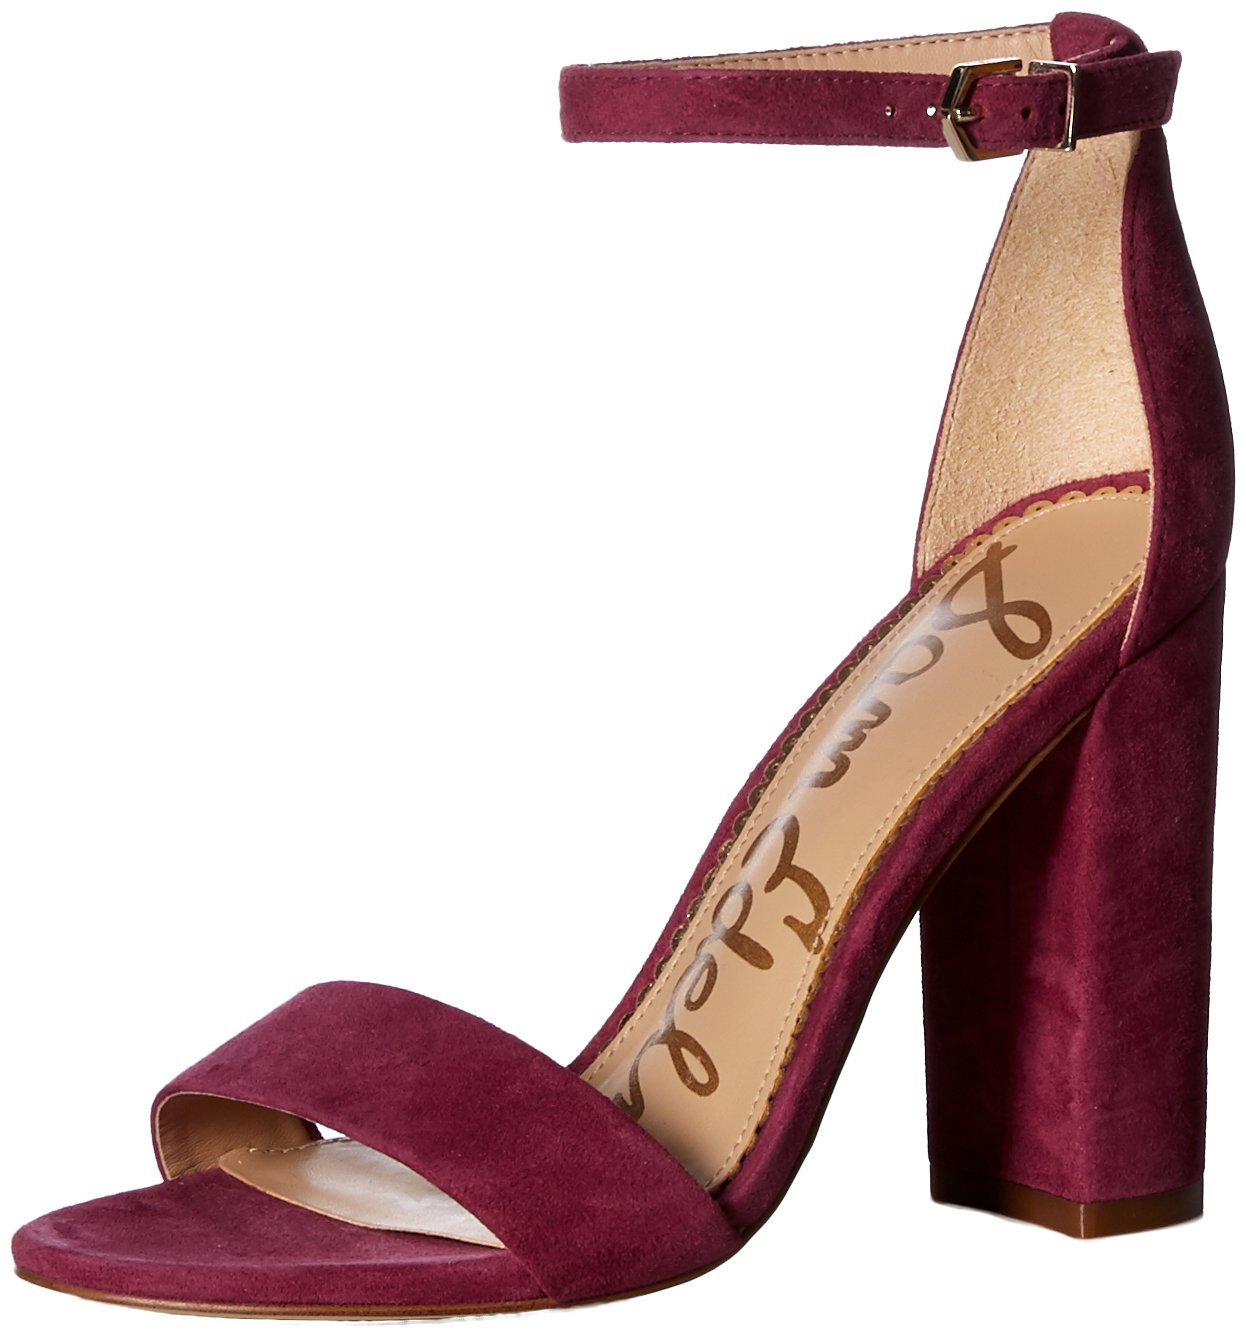 Sam Edelman レディース Yaro B07747F7LC 6.5 B(M) US|Mulberry Pink Mulberry Pink 6.5 B(M) US